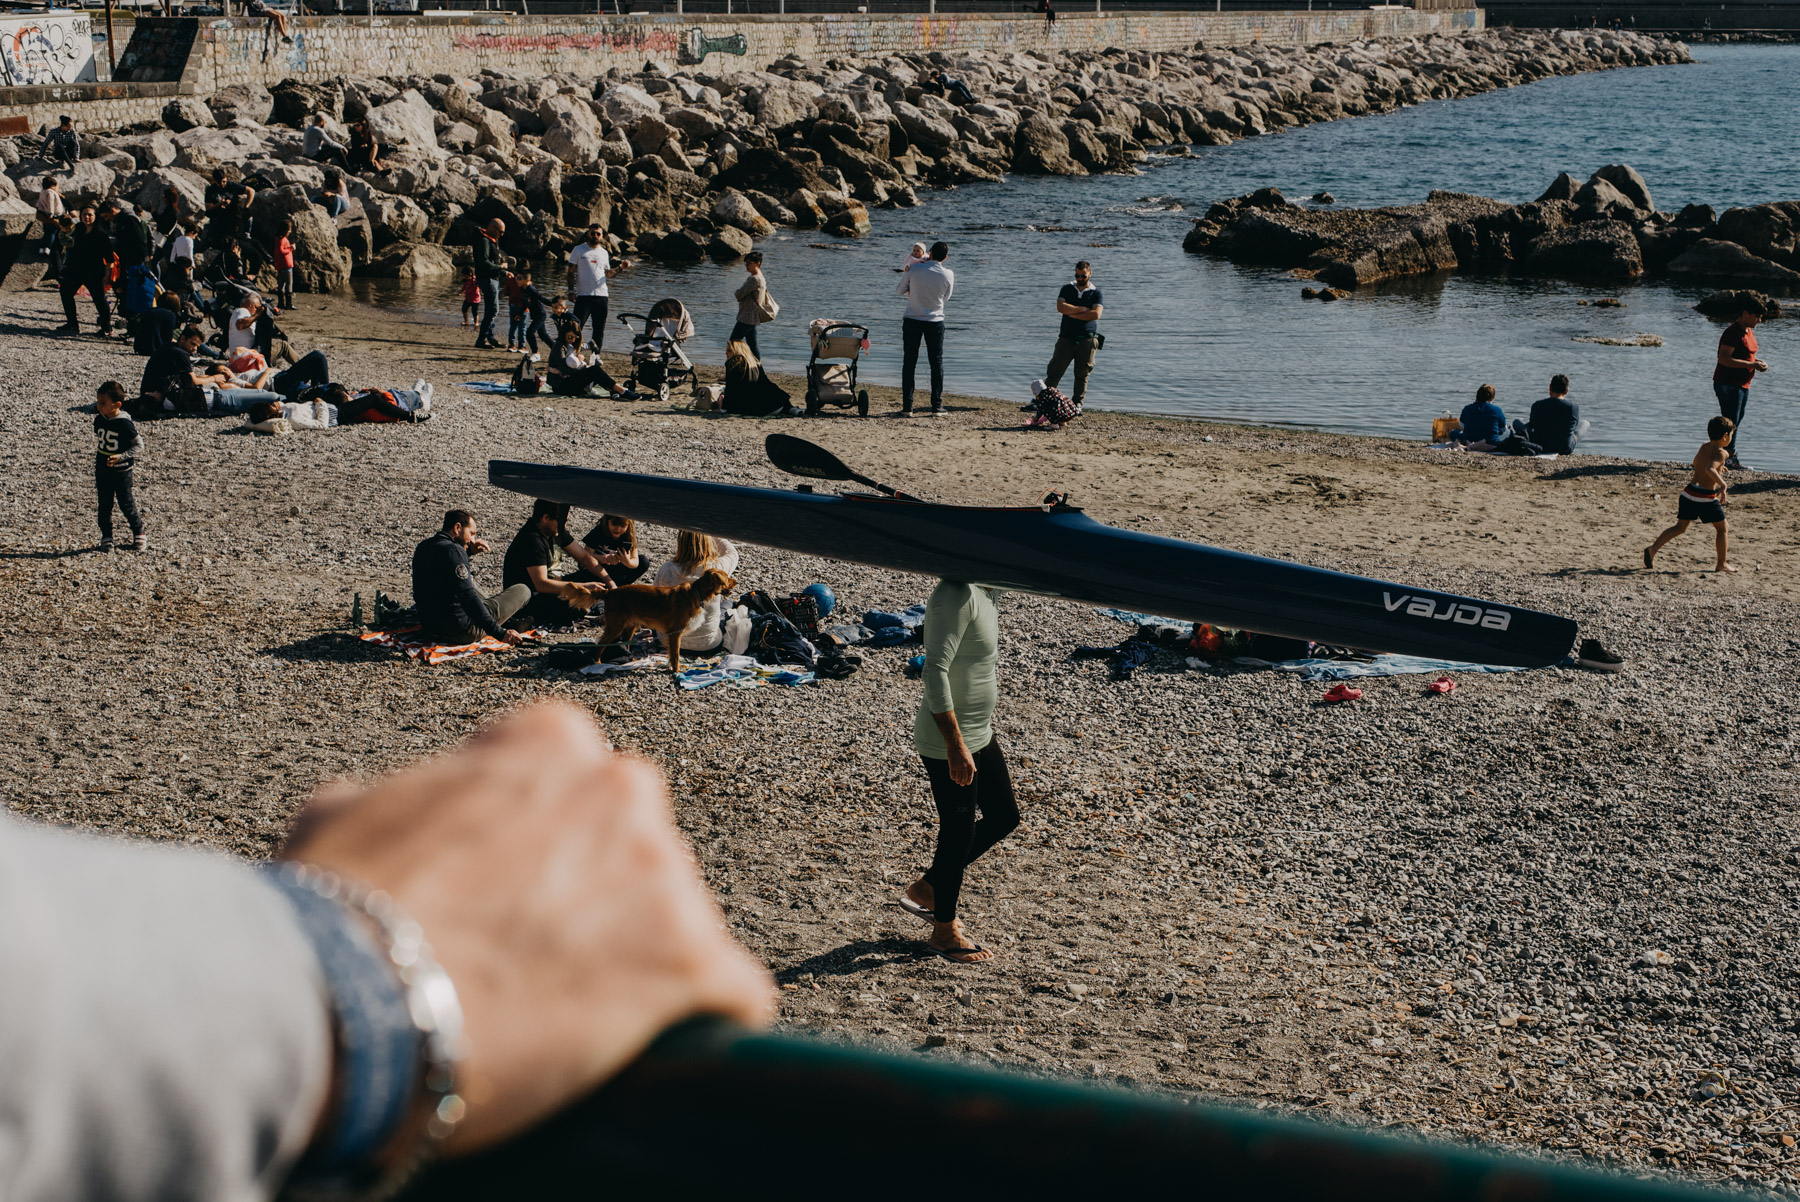 street photography showing people on the beach in the city of Salerno